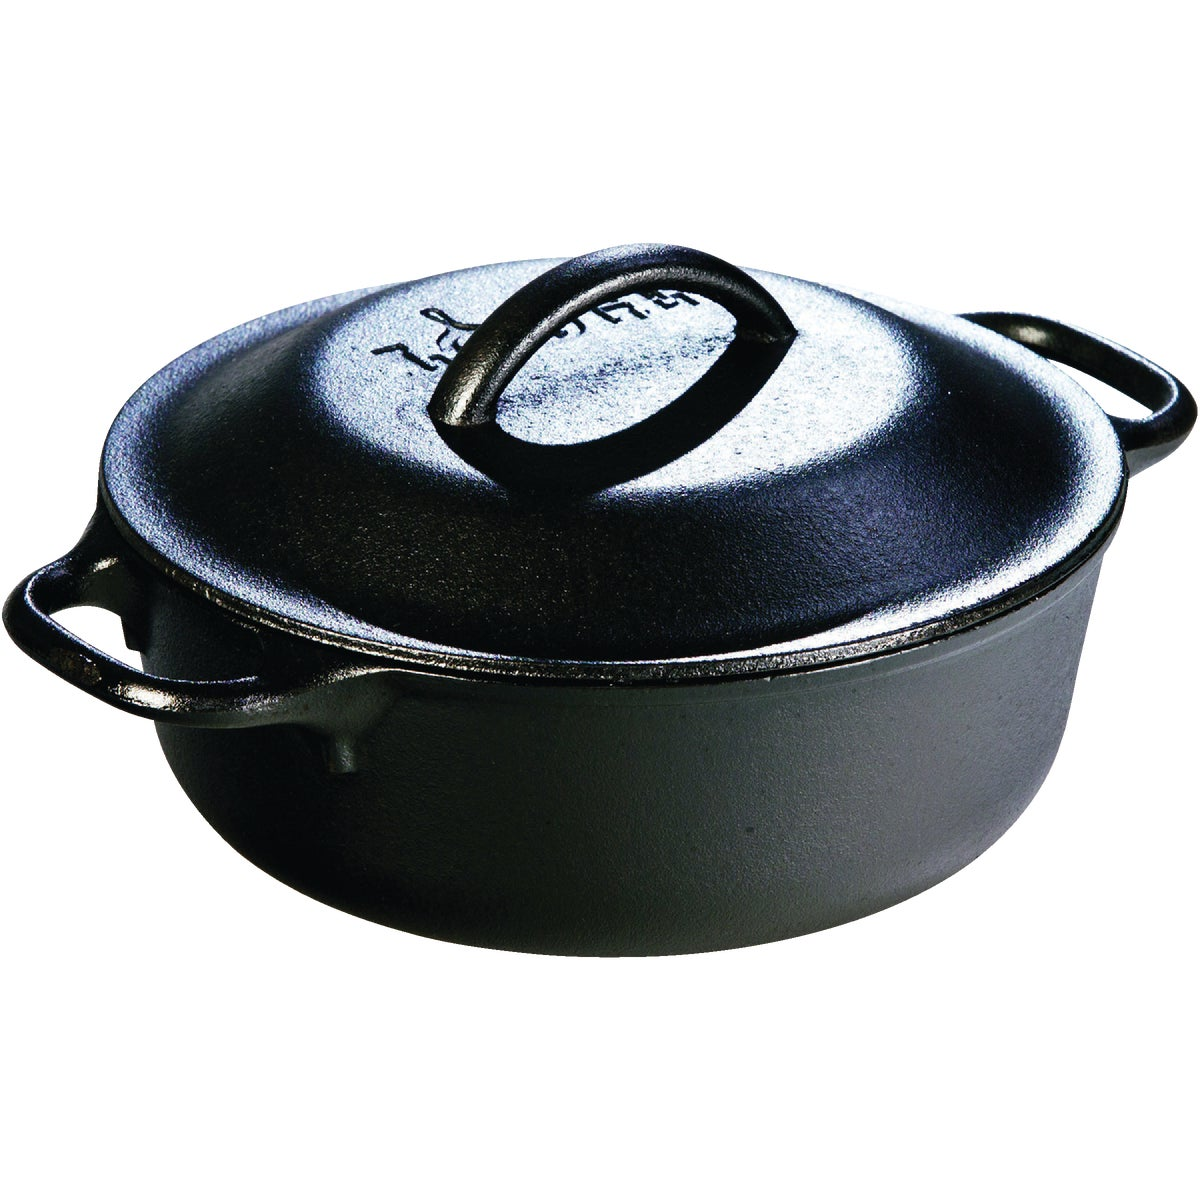 2 QT SERVING POT